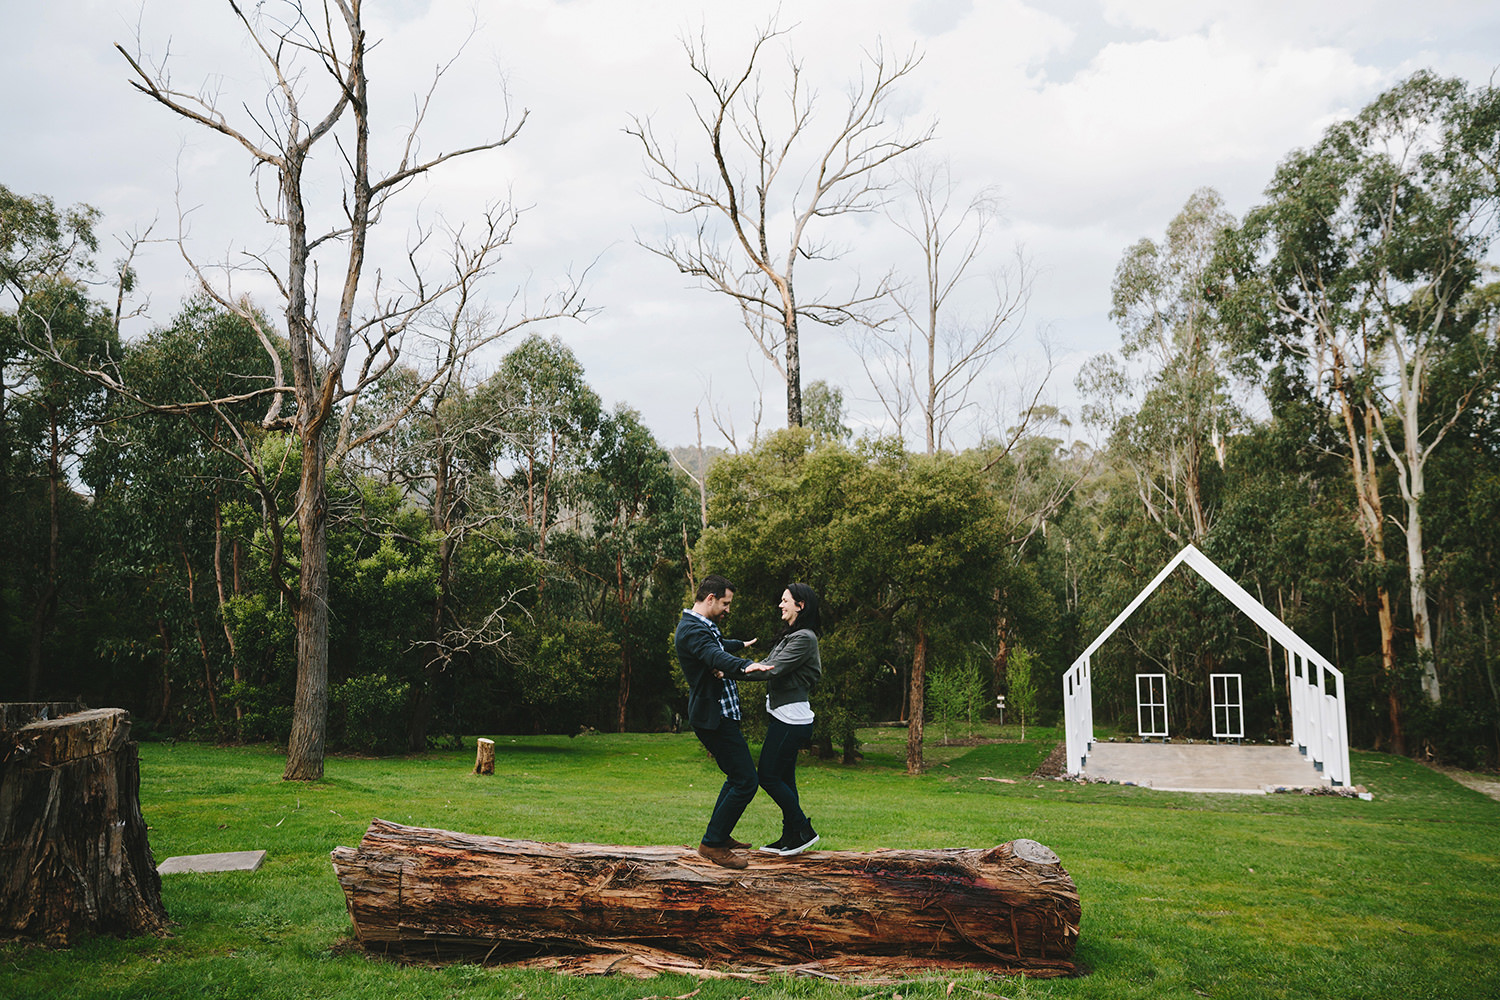 Melbourne_Winery_Wedding_Chris_Merrily004.JPG